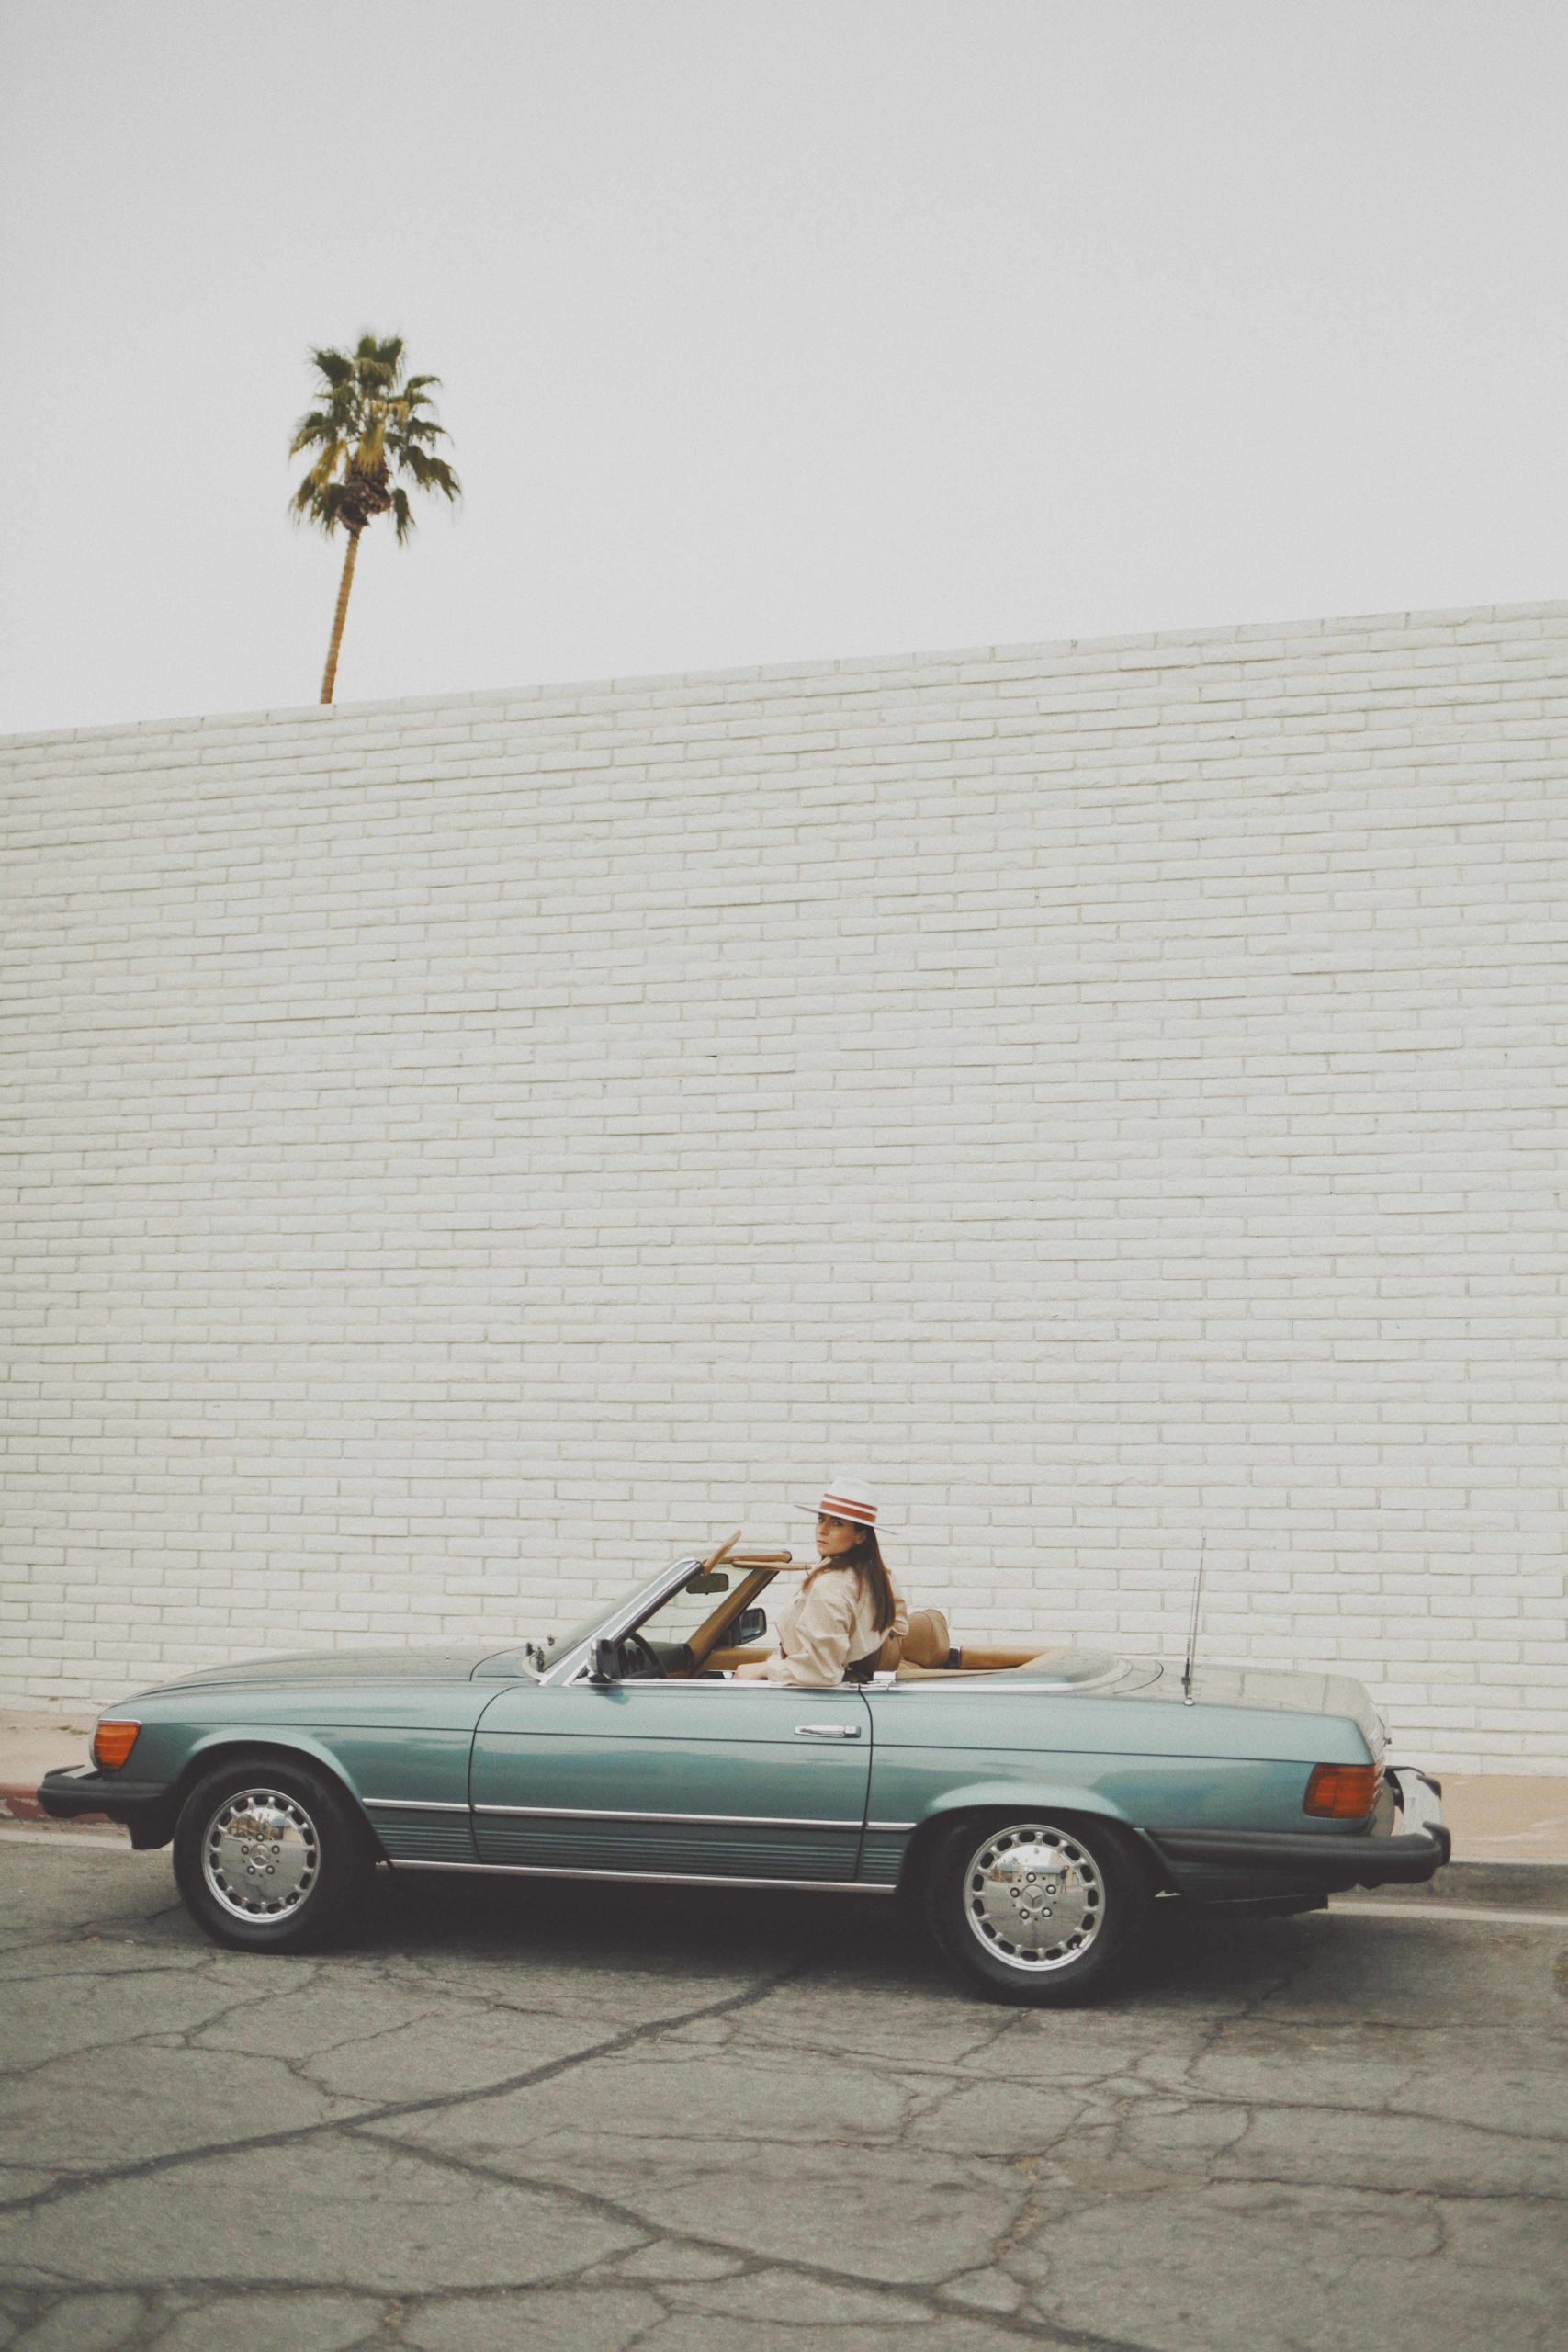 California Dreaming +california + road trip + los angeles + julia comil + modersvp + fashion + editorial + influencer + french + inspiration + palm springs + Mercedes SL + Turo Car Rental + vintage car + longchamp bag